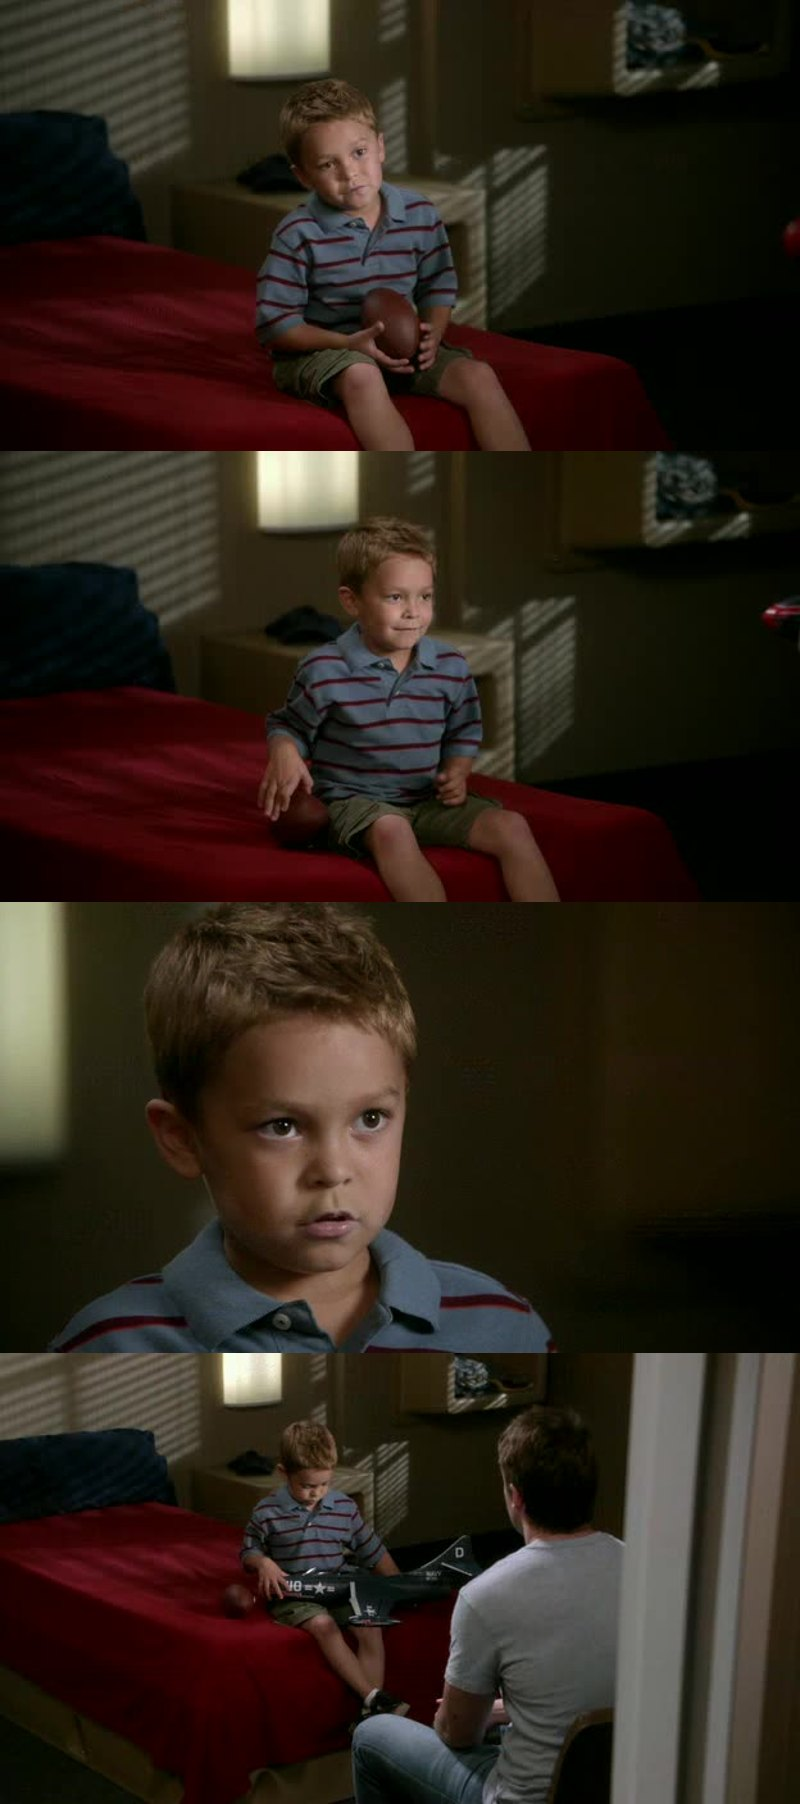 This kid is just adorable!